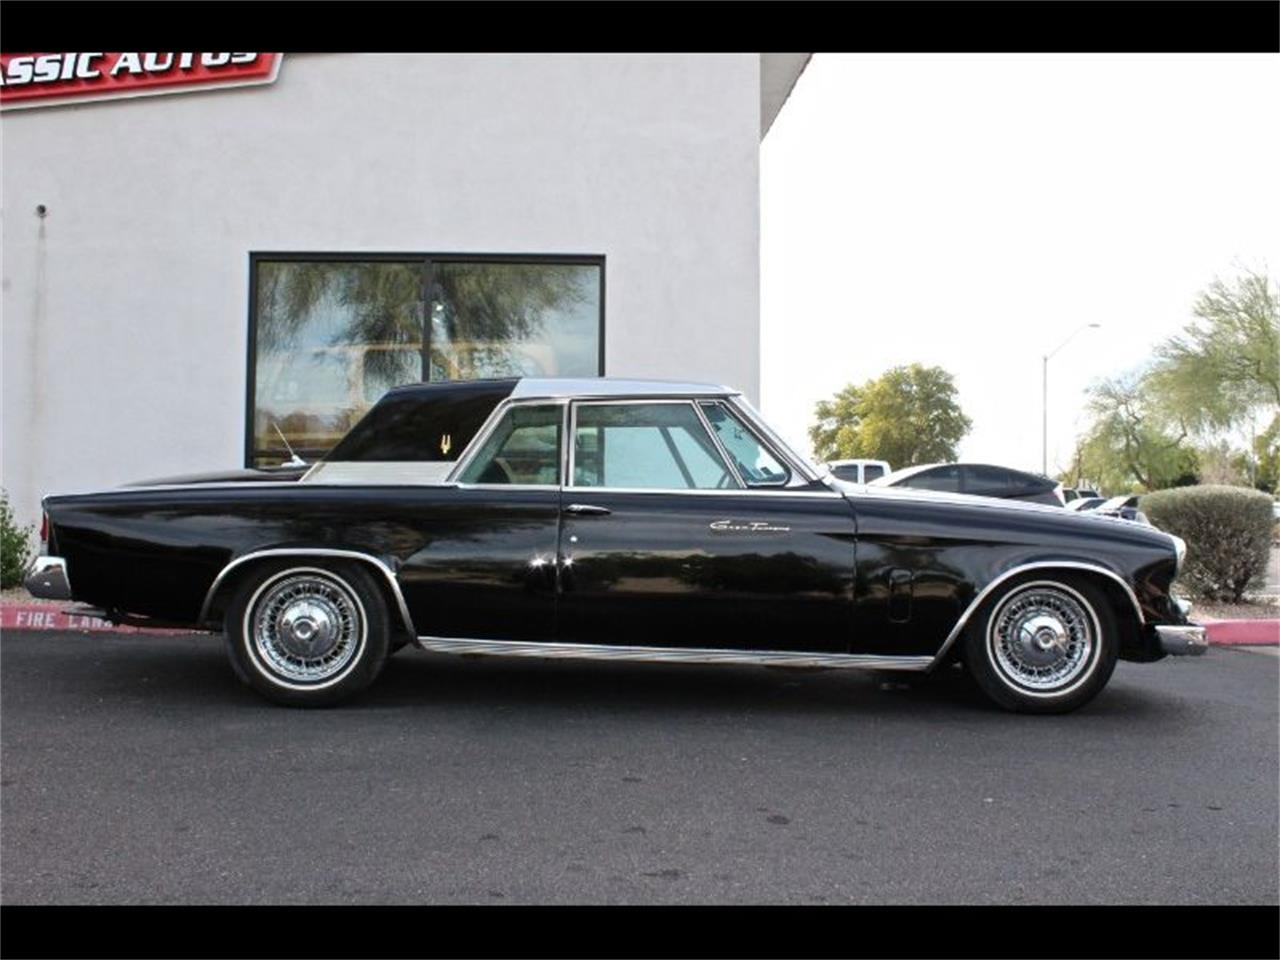 Large Picture of 1962 Studebaker Gran Turismo Hawk located in California Auction Vehicle - PFYZ